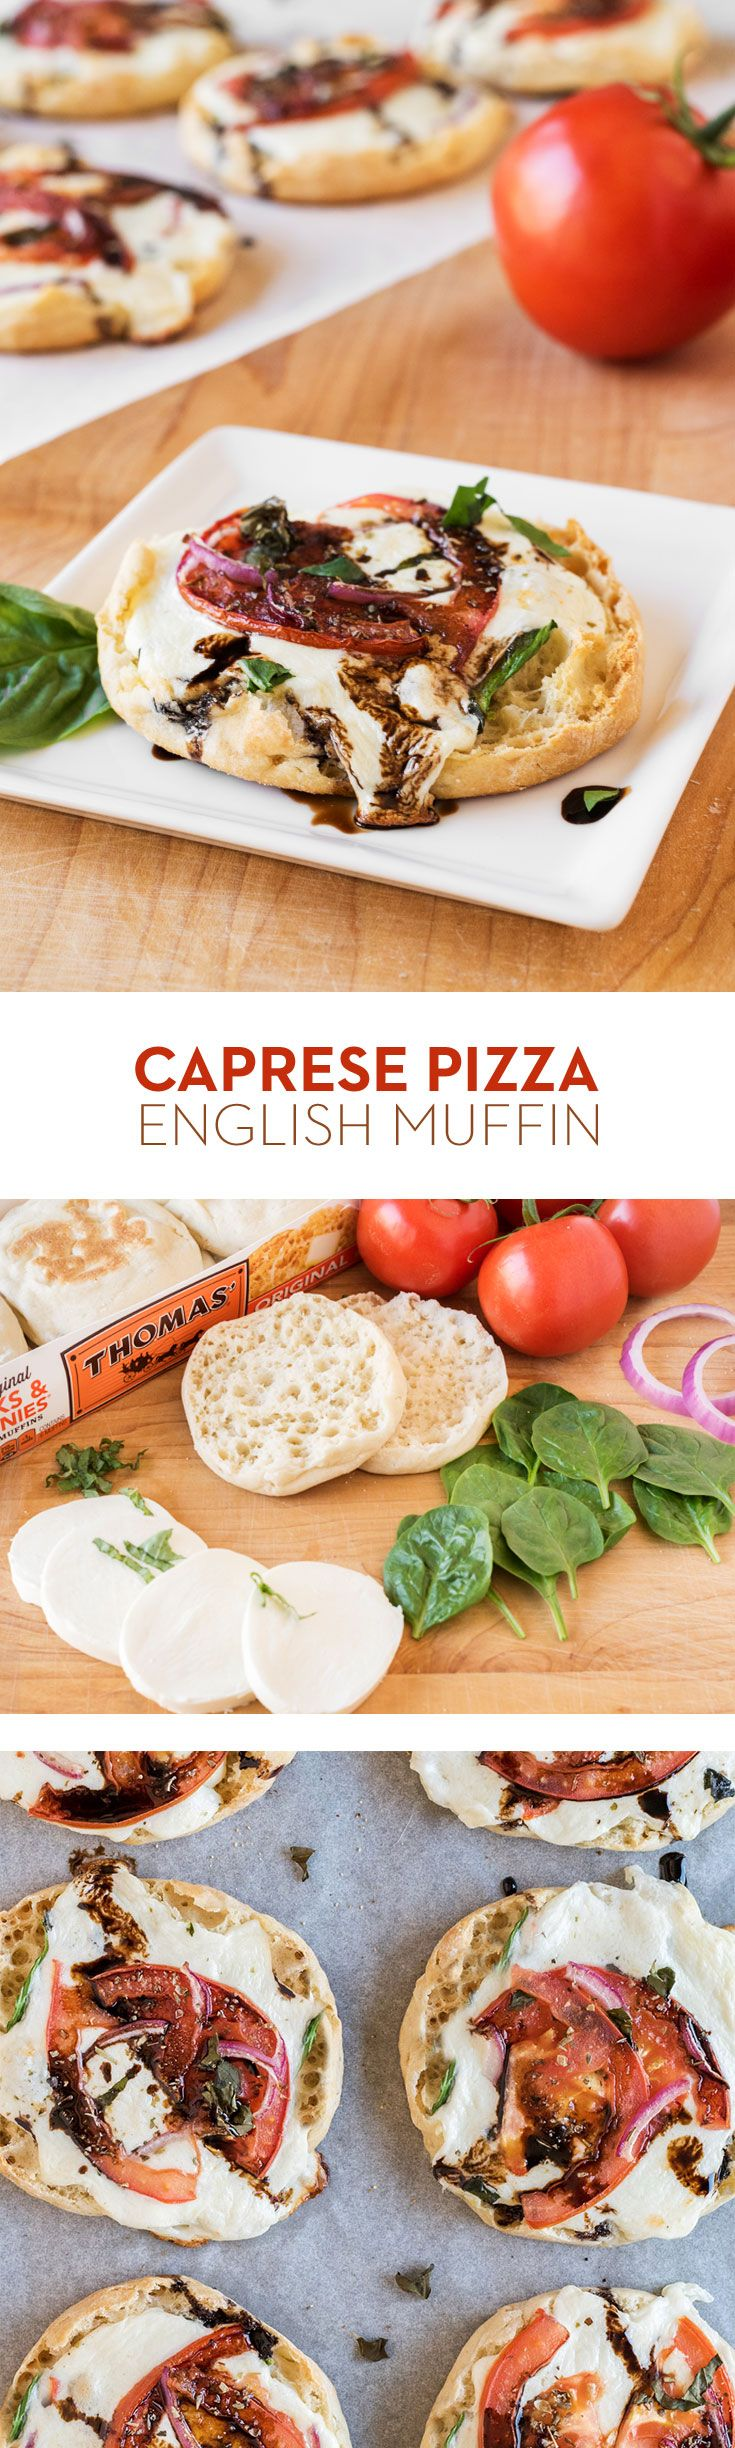 Caprese Pizza English Muffin – Pizza is one of those things you can eat at any time, at any temperature, with any toppings. These Mozzarella, tomato and basil pizzas are just the start of what you can do when you've got your favorite pizza toppings and Thomas' Original English Muffins!